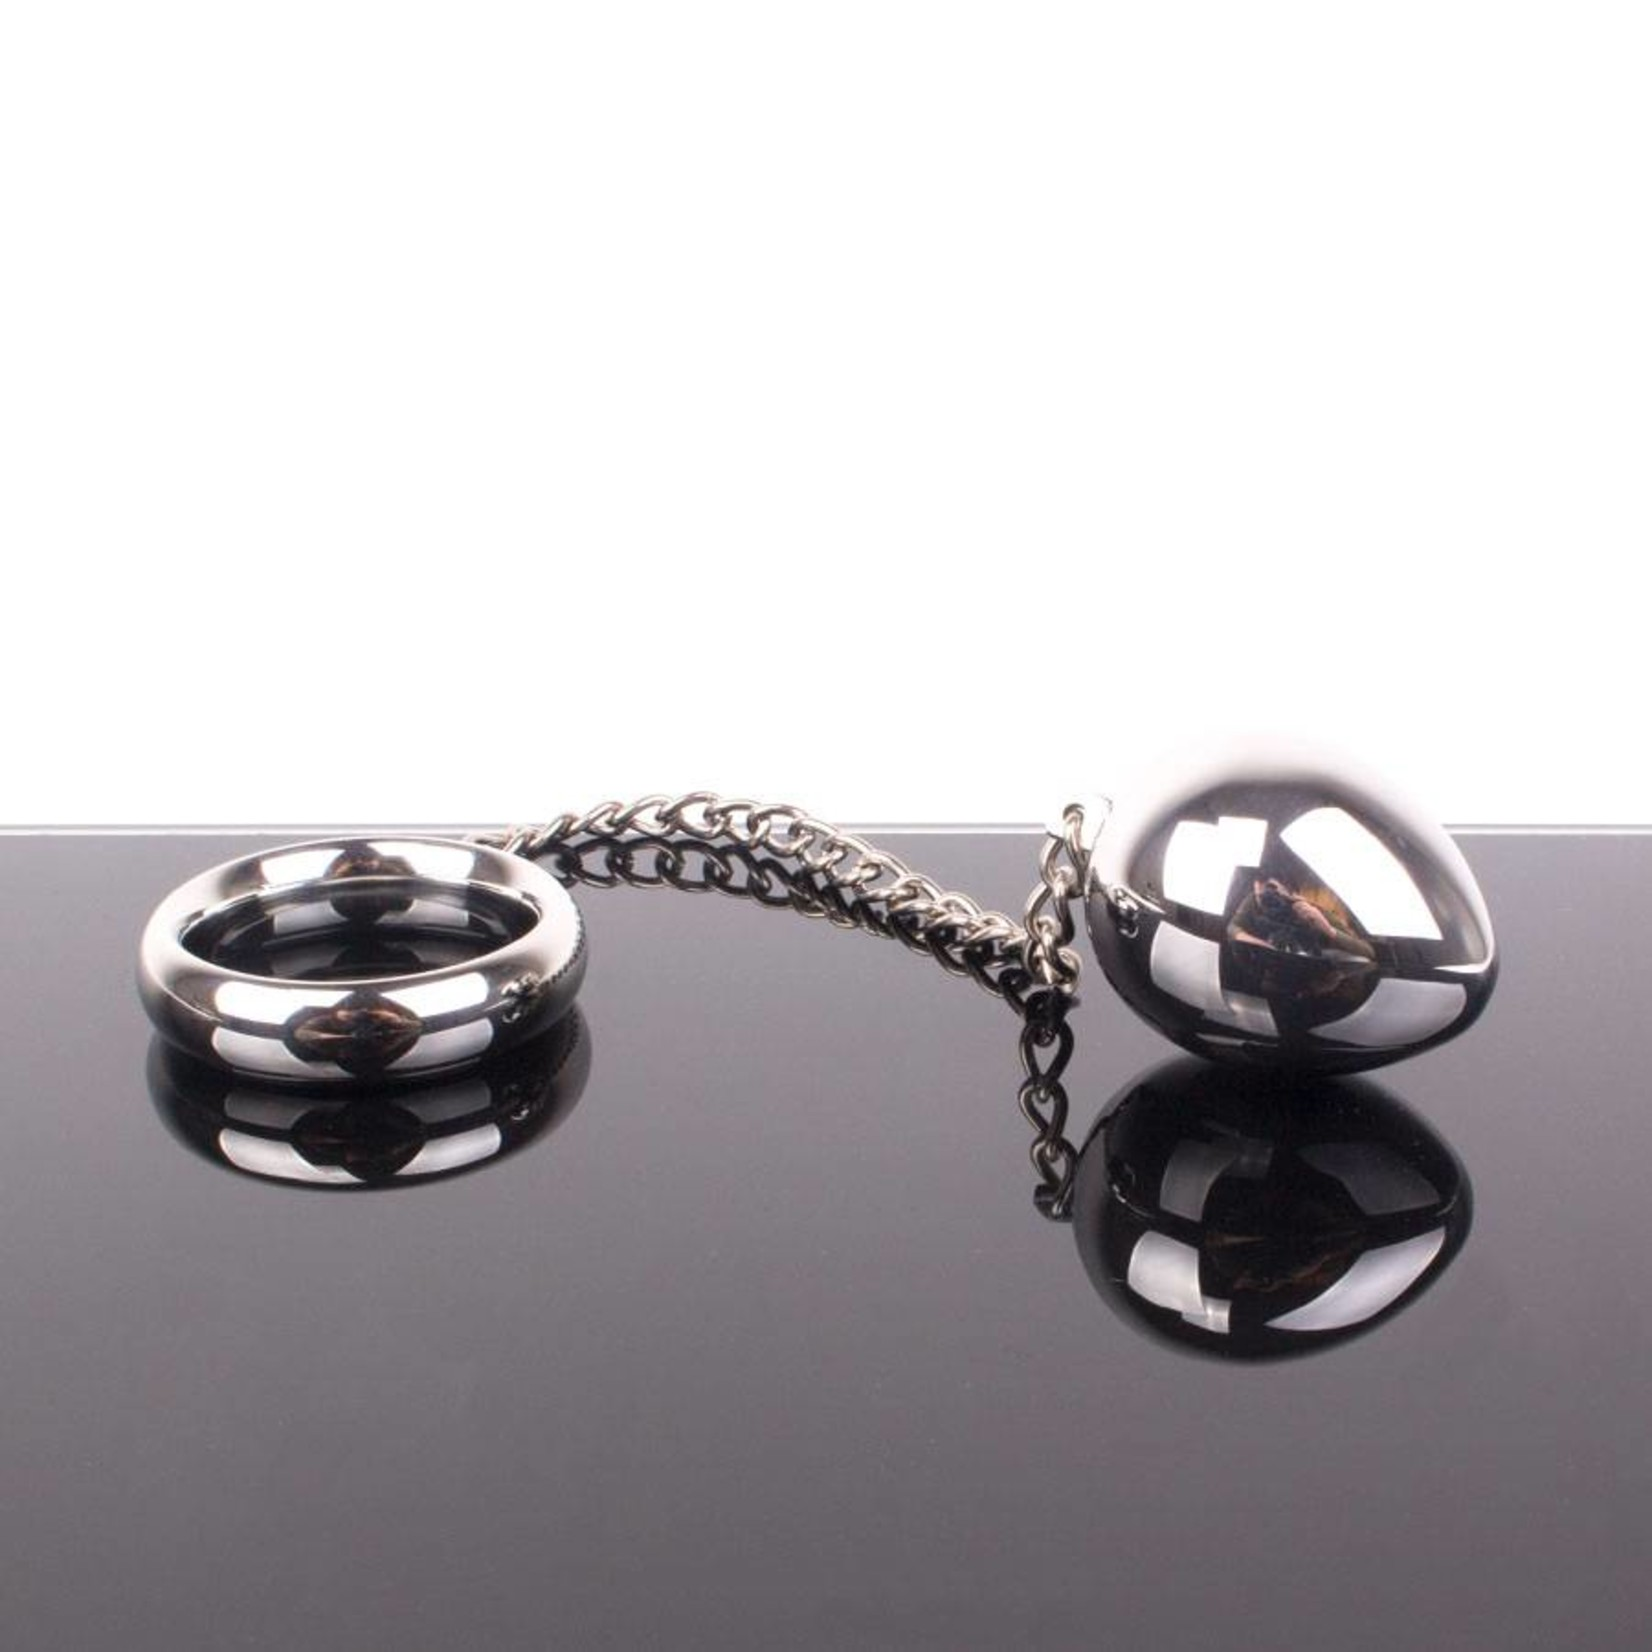 KIOTOS Steel Donut C-Ring Anal Egg with Chain	45x45